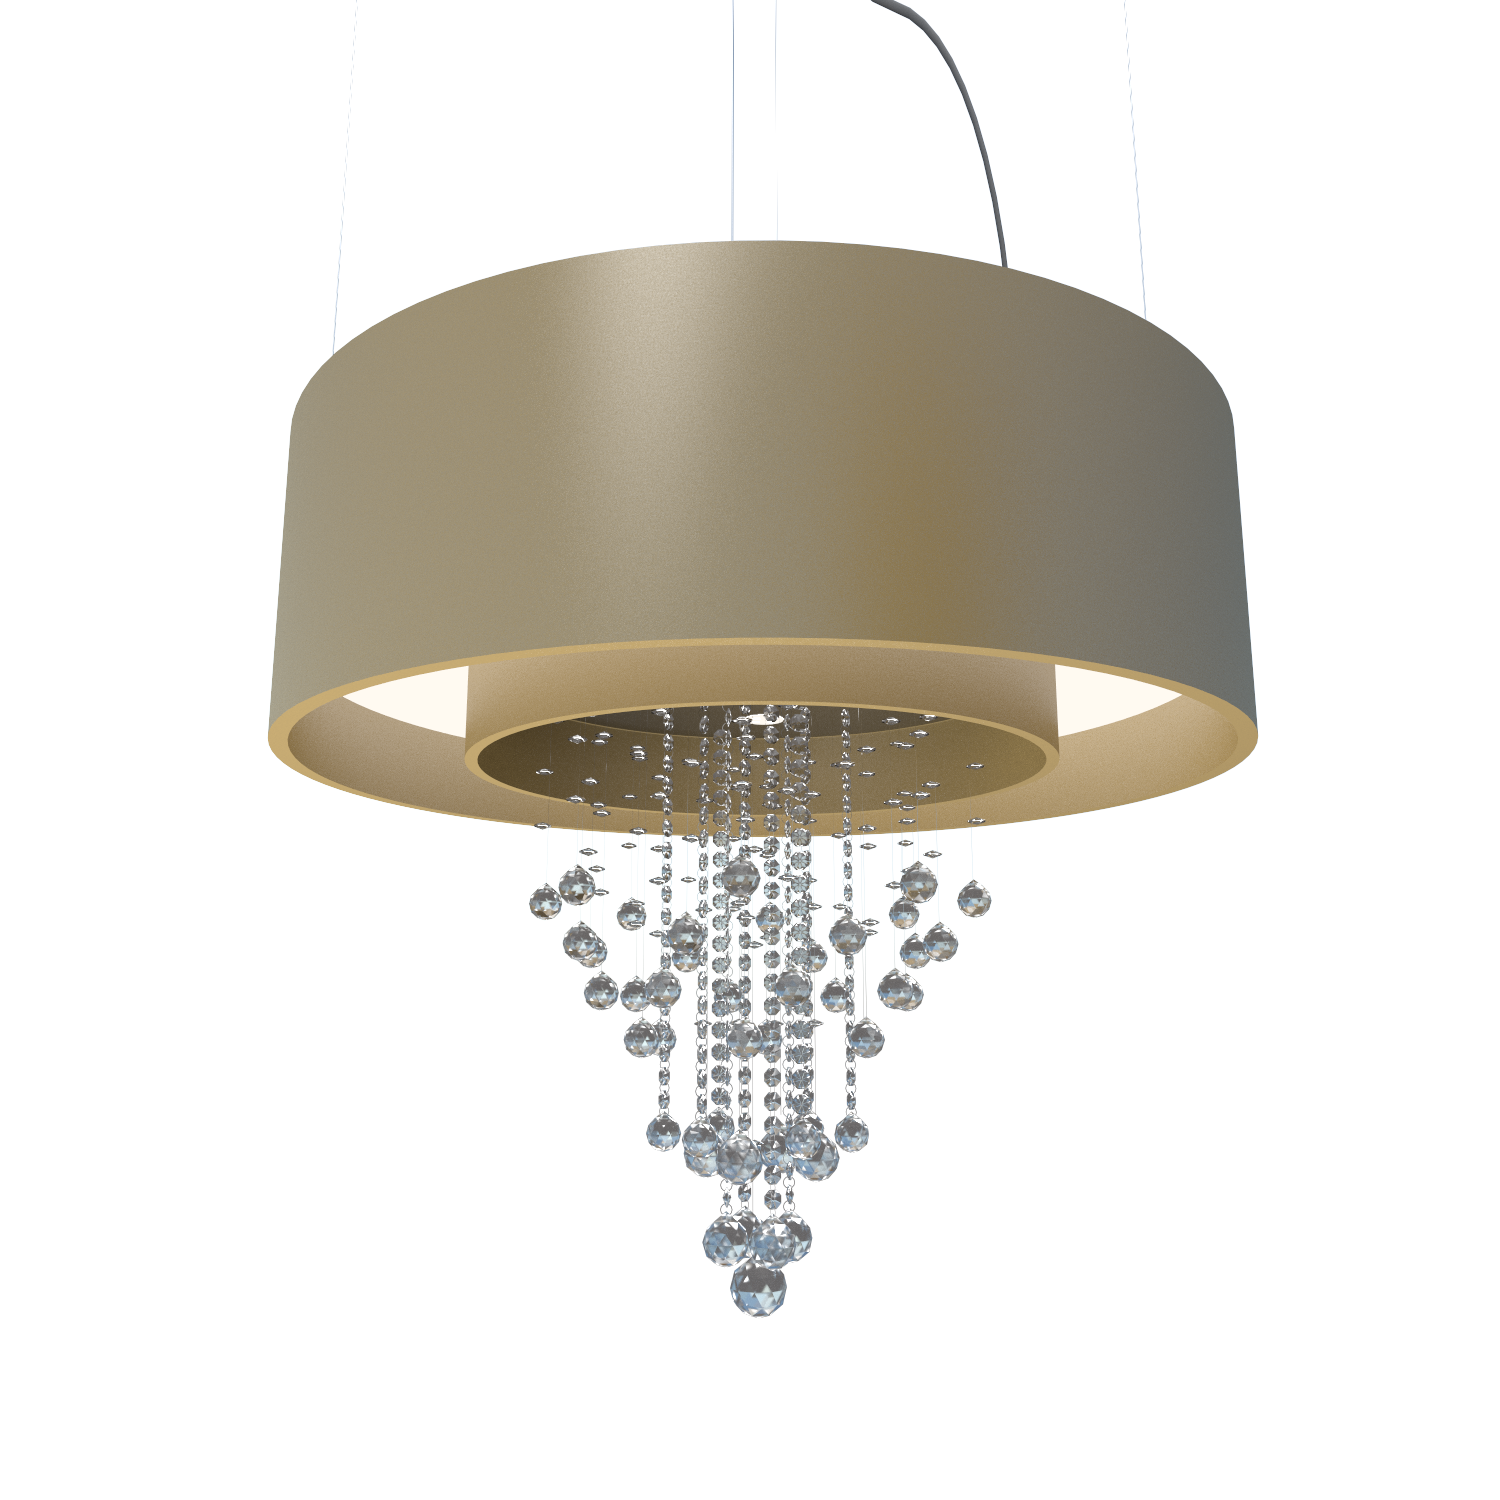 Pendant Lamp Accord Cristais 215C - Cristais Line Accord Lighting | Pale Gold